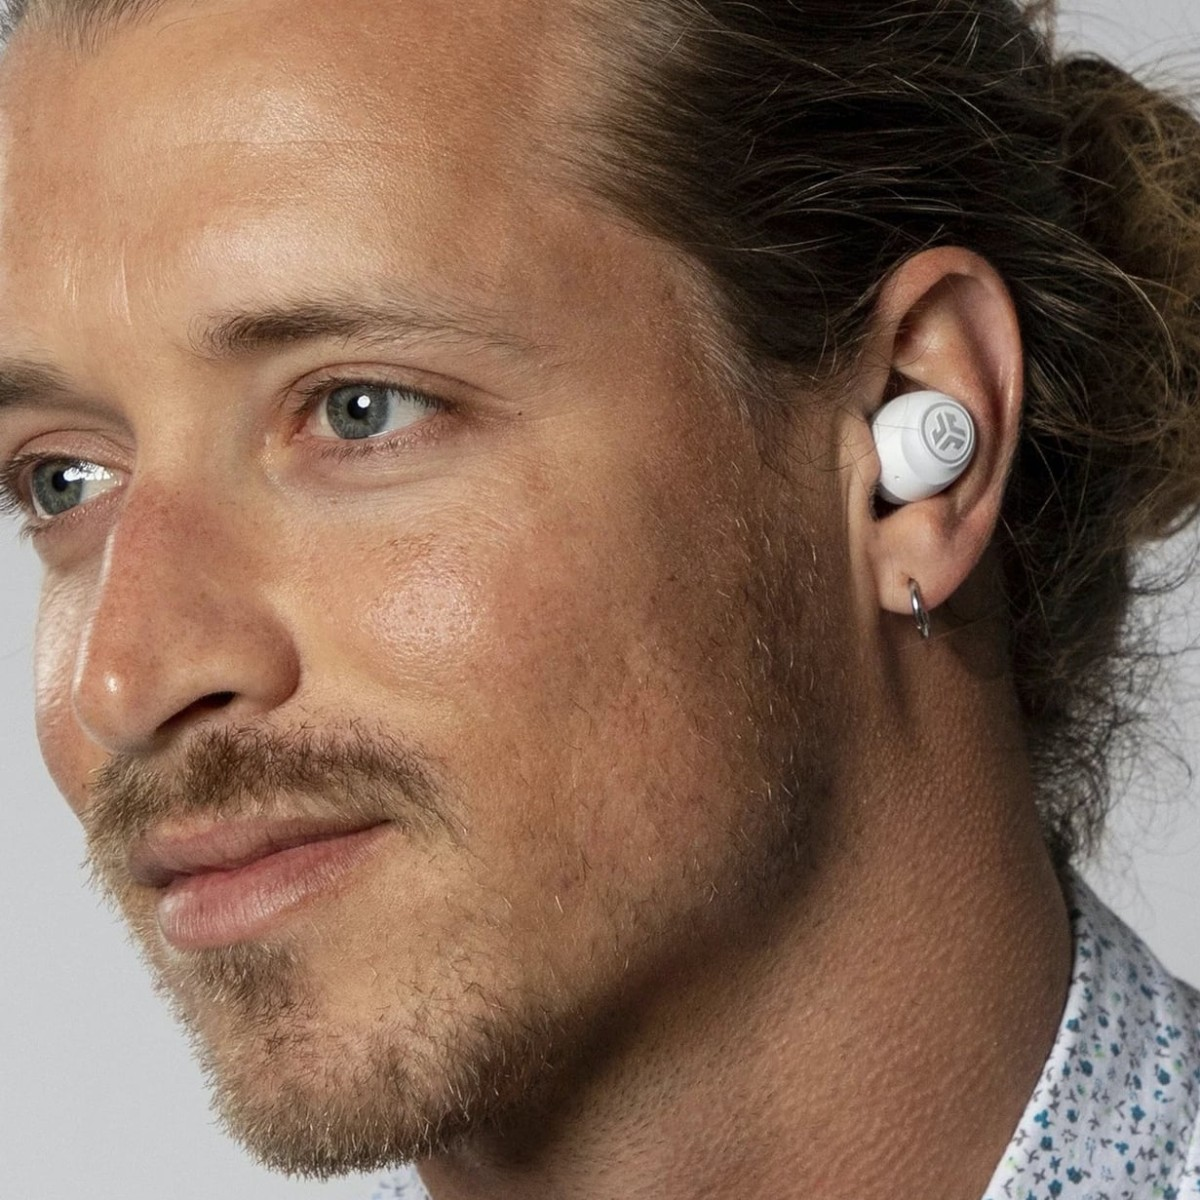 JLab GO Air True Wireless Earbuds Magnetic Headphones offer 20 full hours of playtime